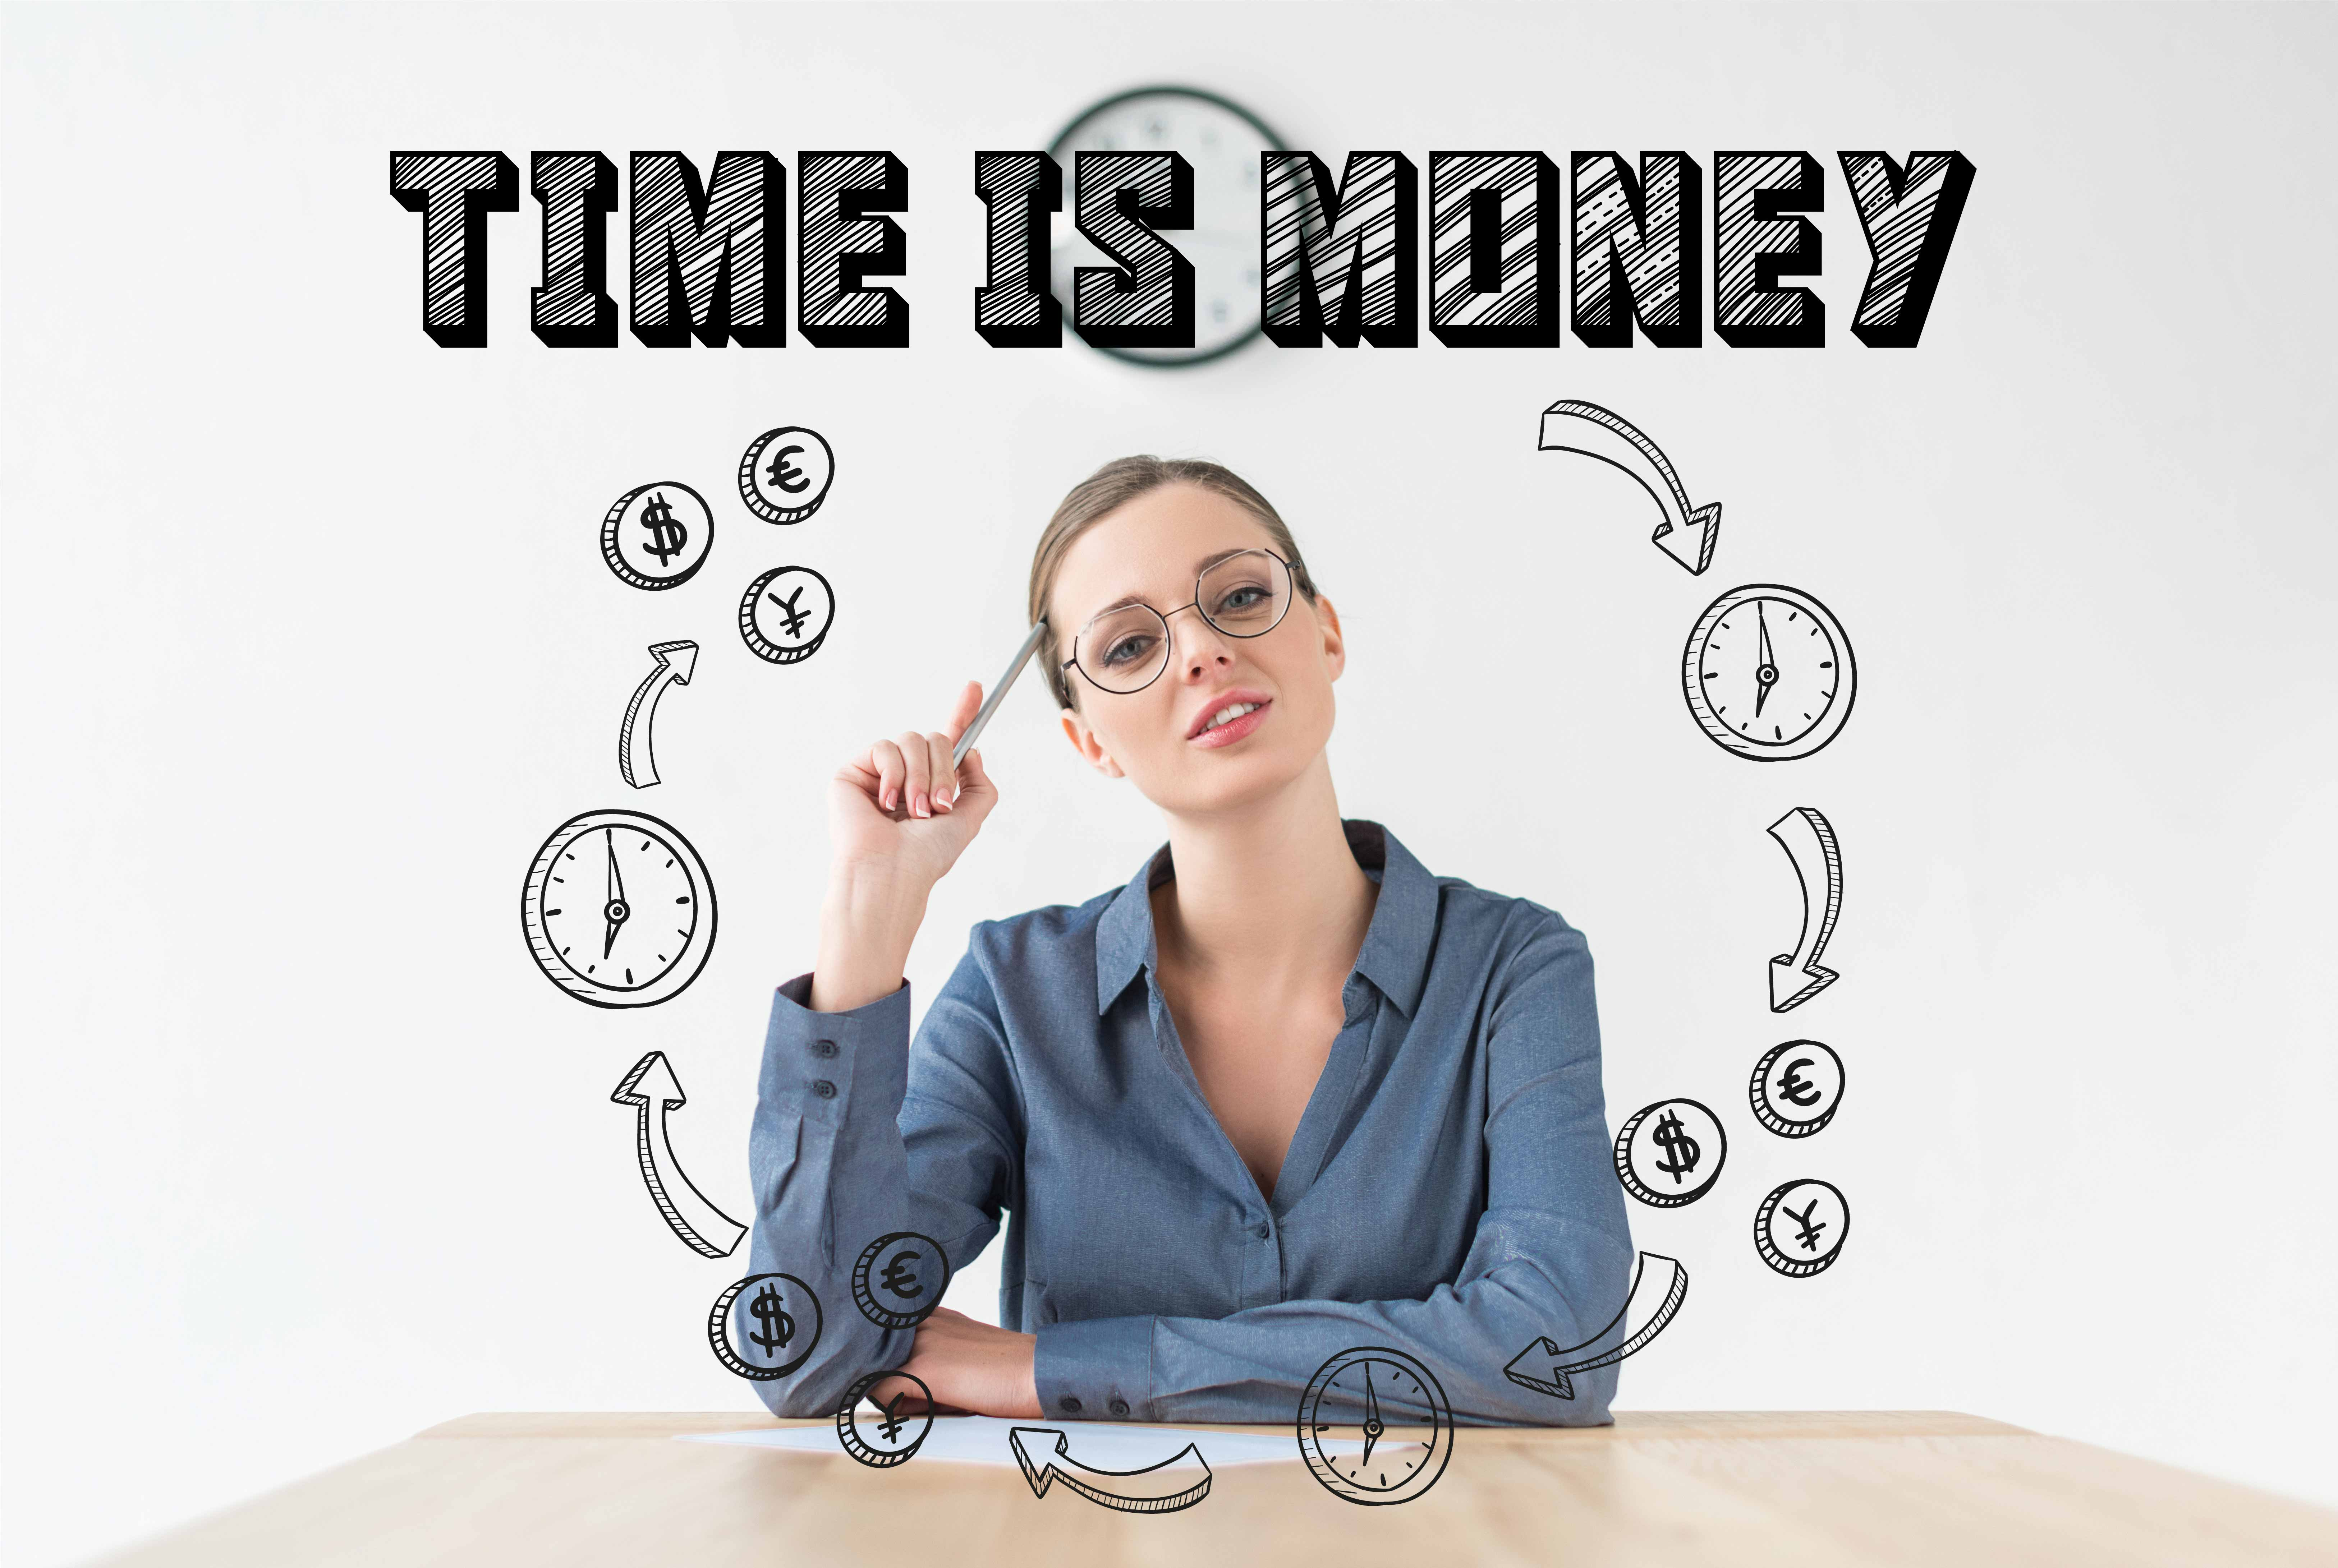 Business woman sitting at desk surrounded by icons of clocks and money symbols with the words time is money above her head.